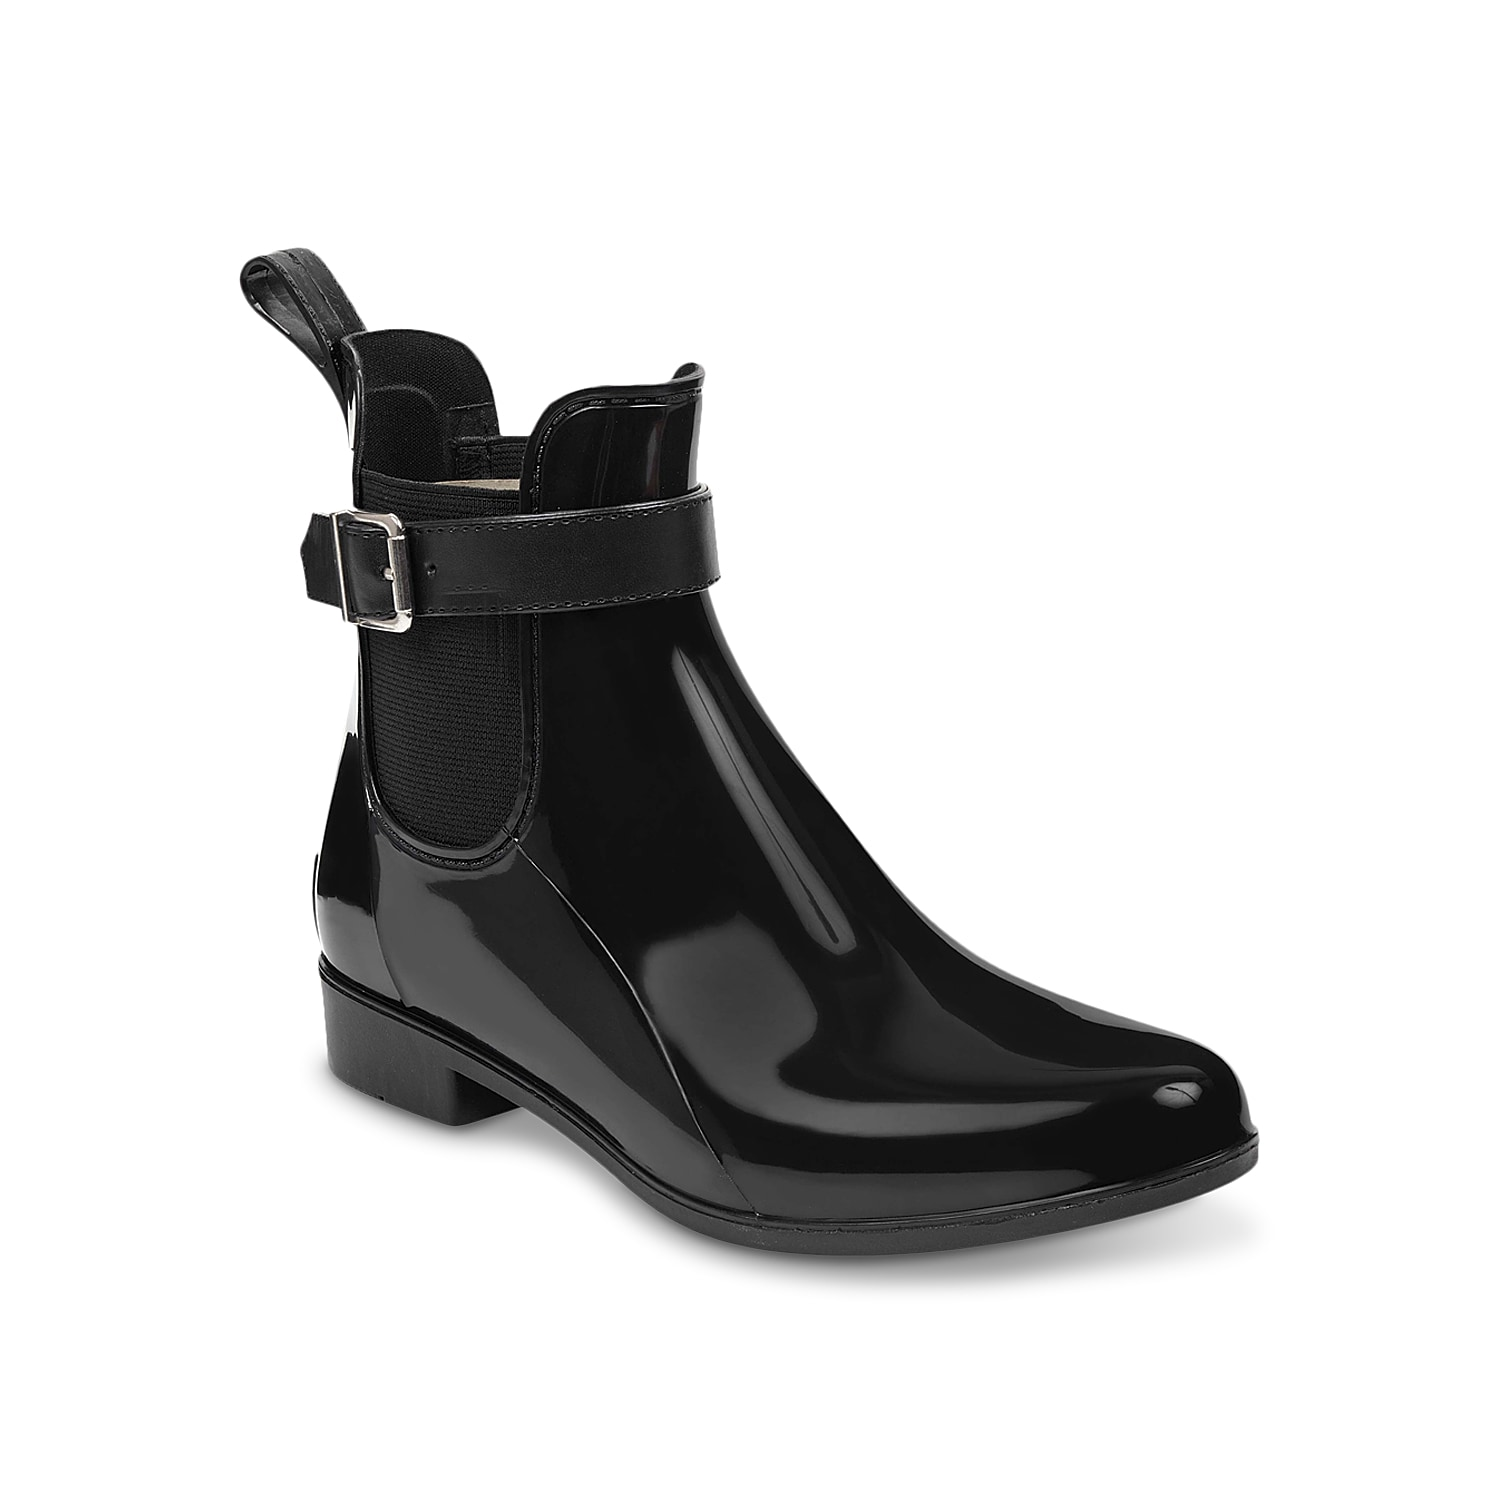 The Rainy bootie from Marc Fisher will be your go-to choice for bad weather days. The rubber construction is complemented by decorative ankle strap and modest heel. Double goring at the sides offers a snug fit.Click here for Boot Measuring Guide.